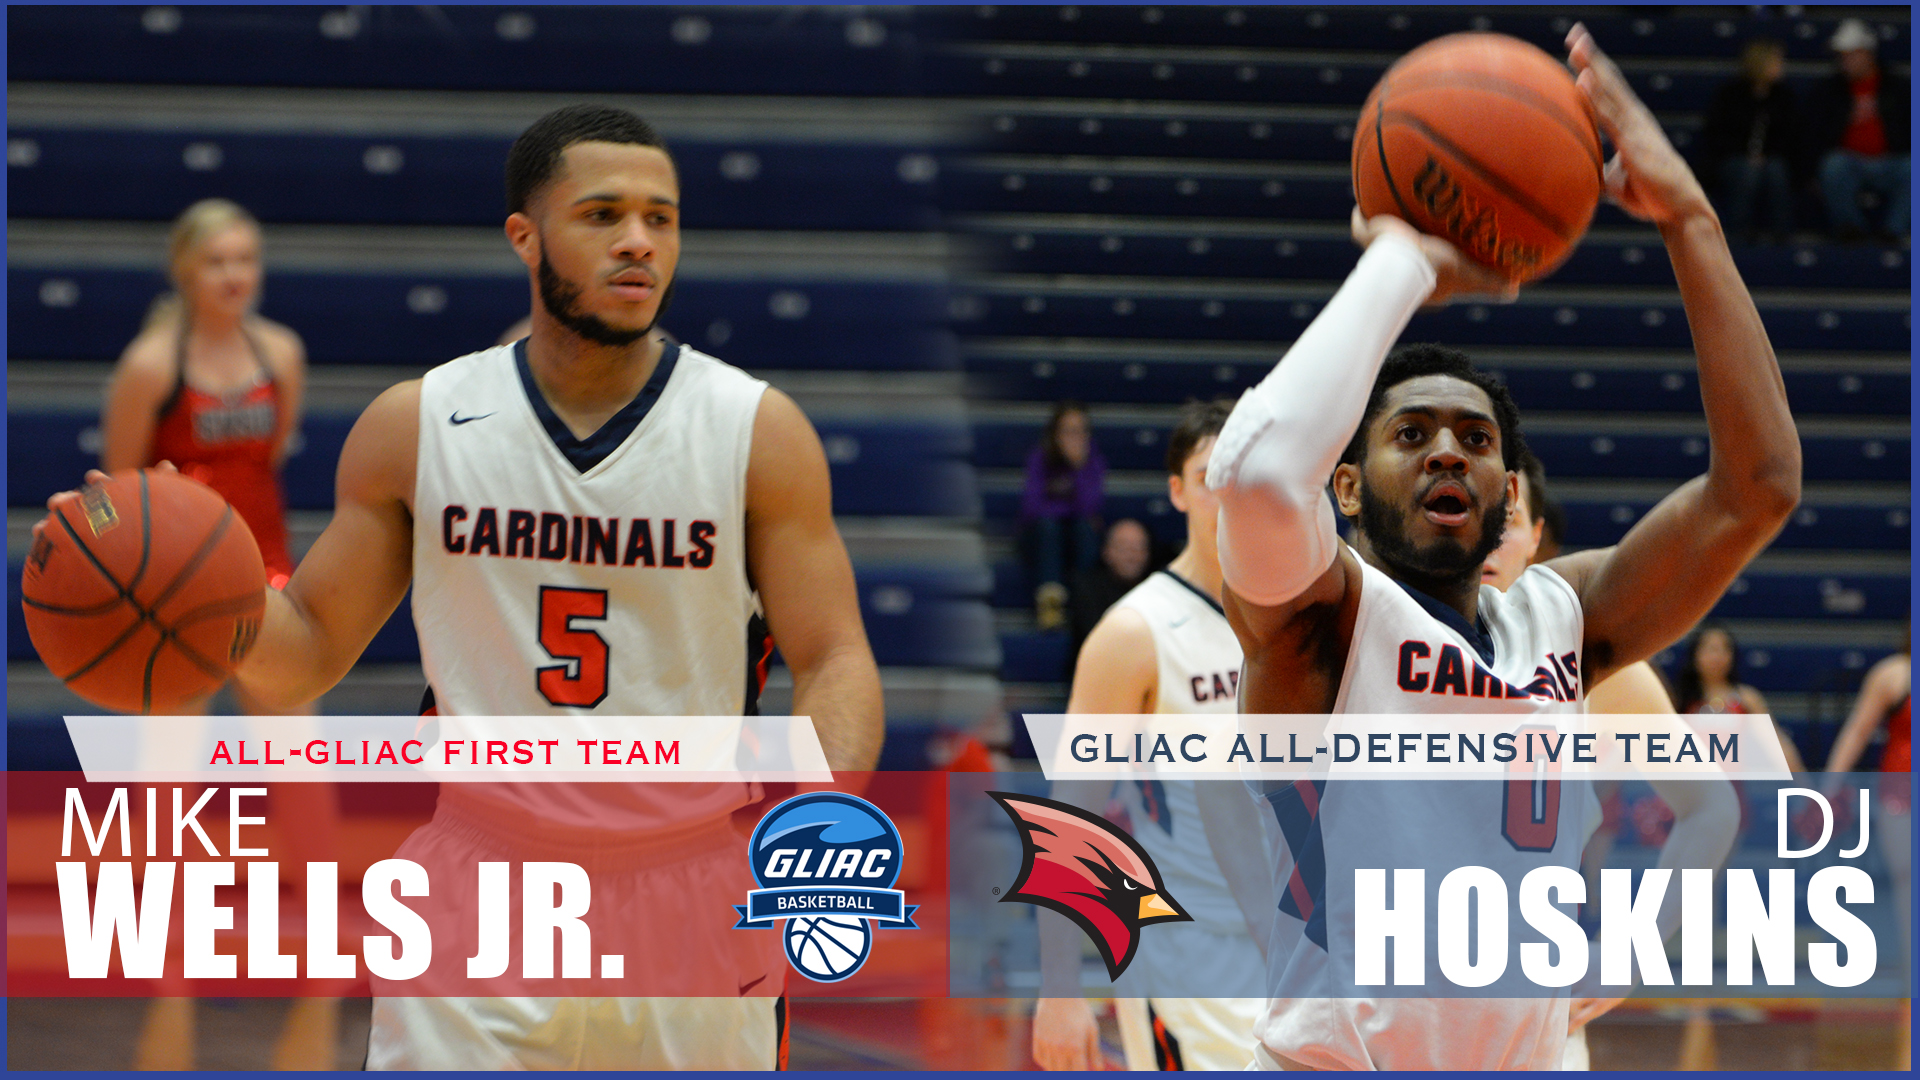 Wells, Hoskins Earn 2017-18 All-GLIAC Accolades